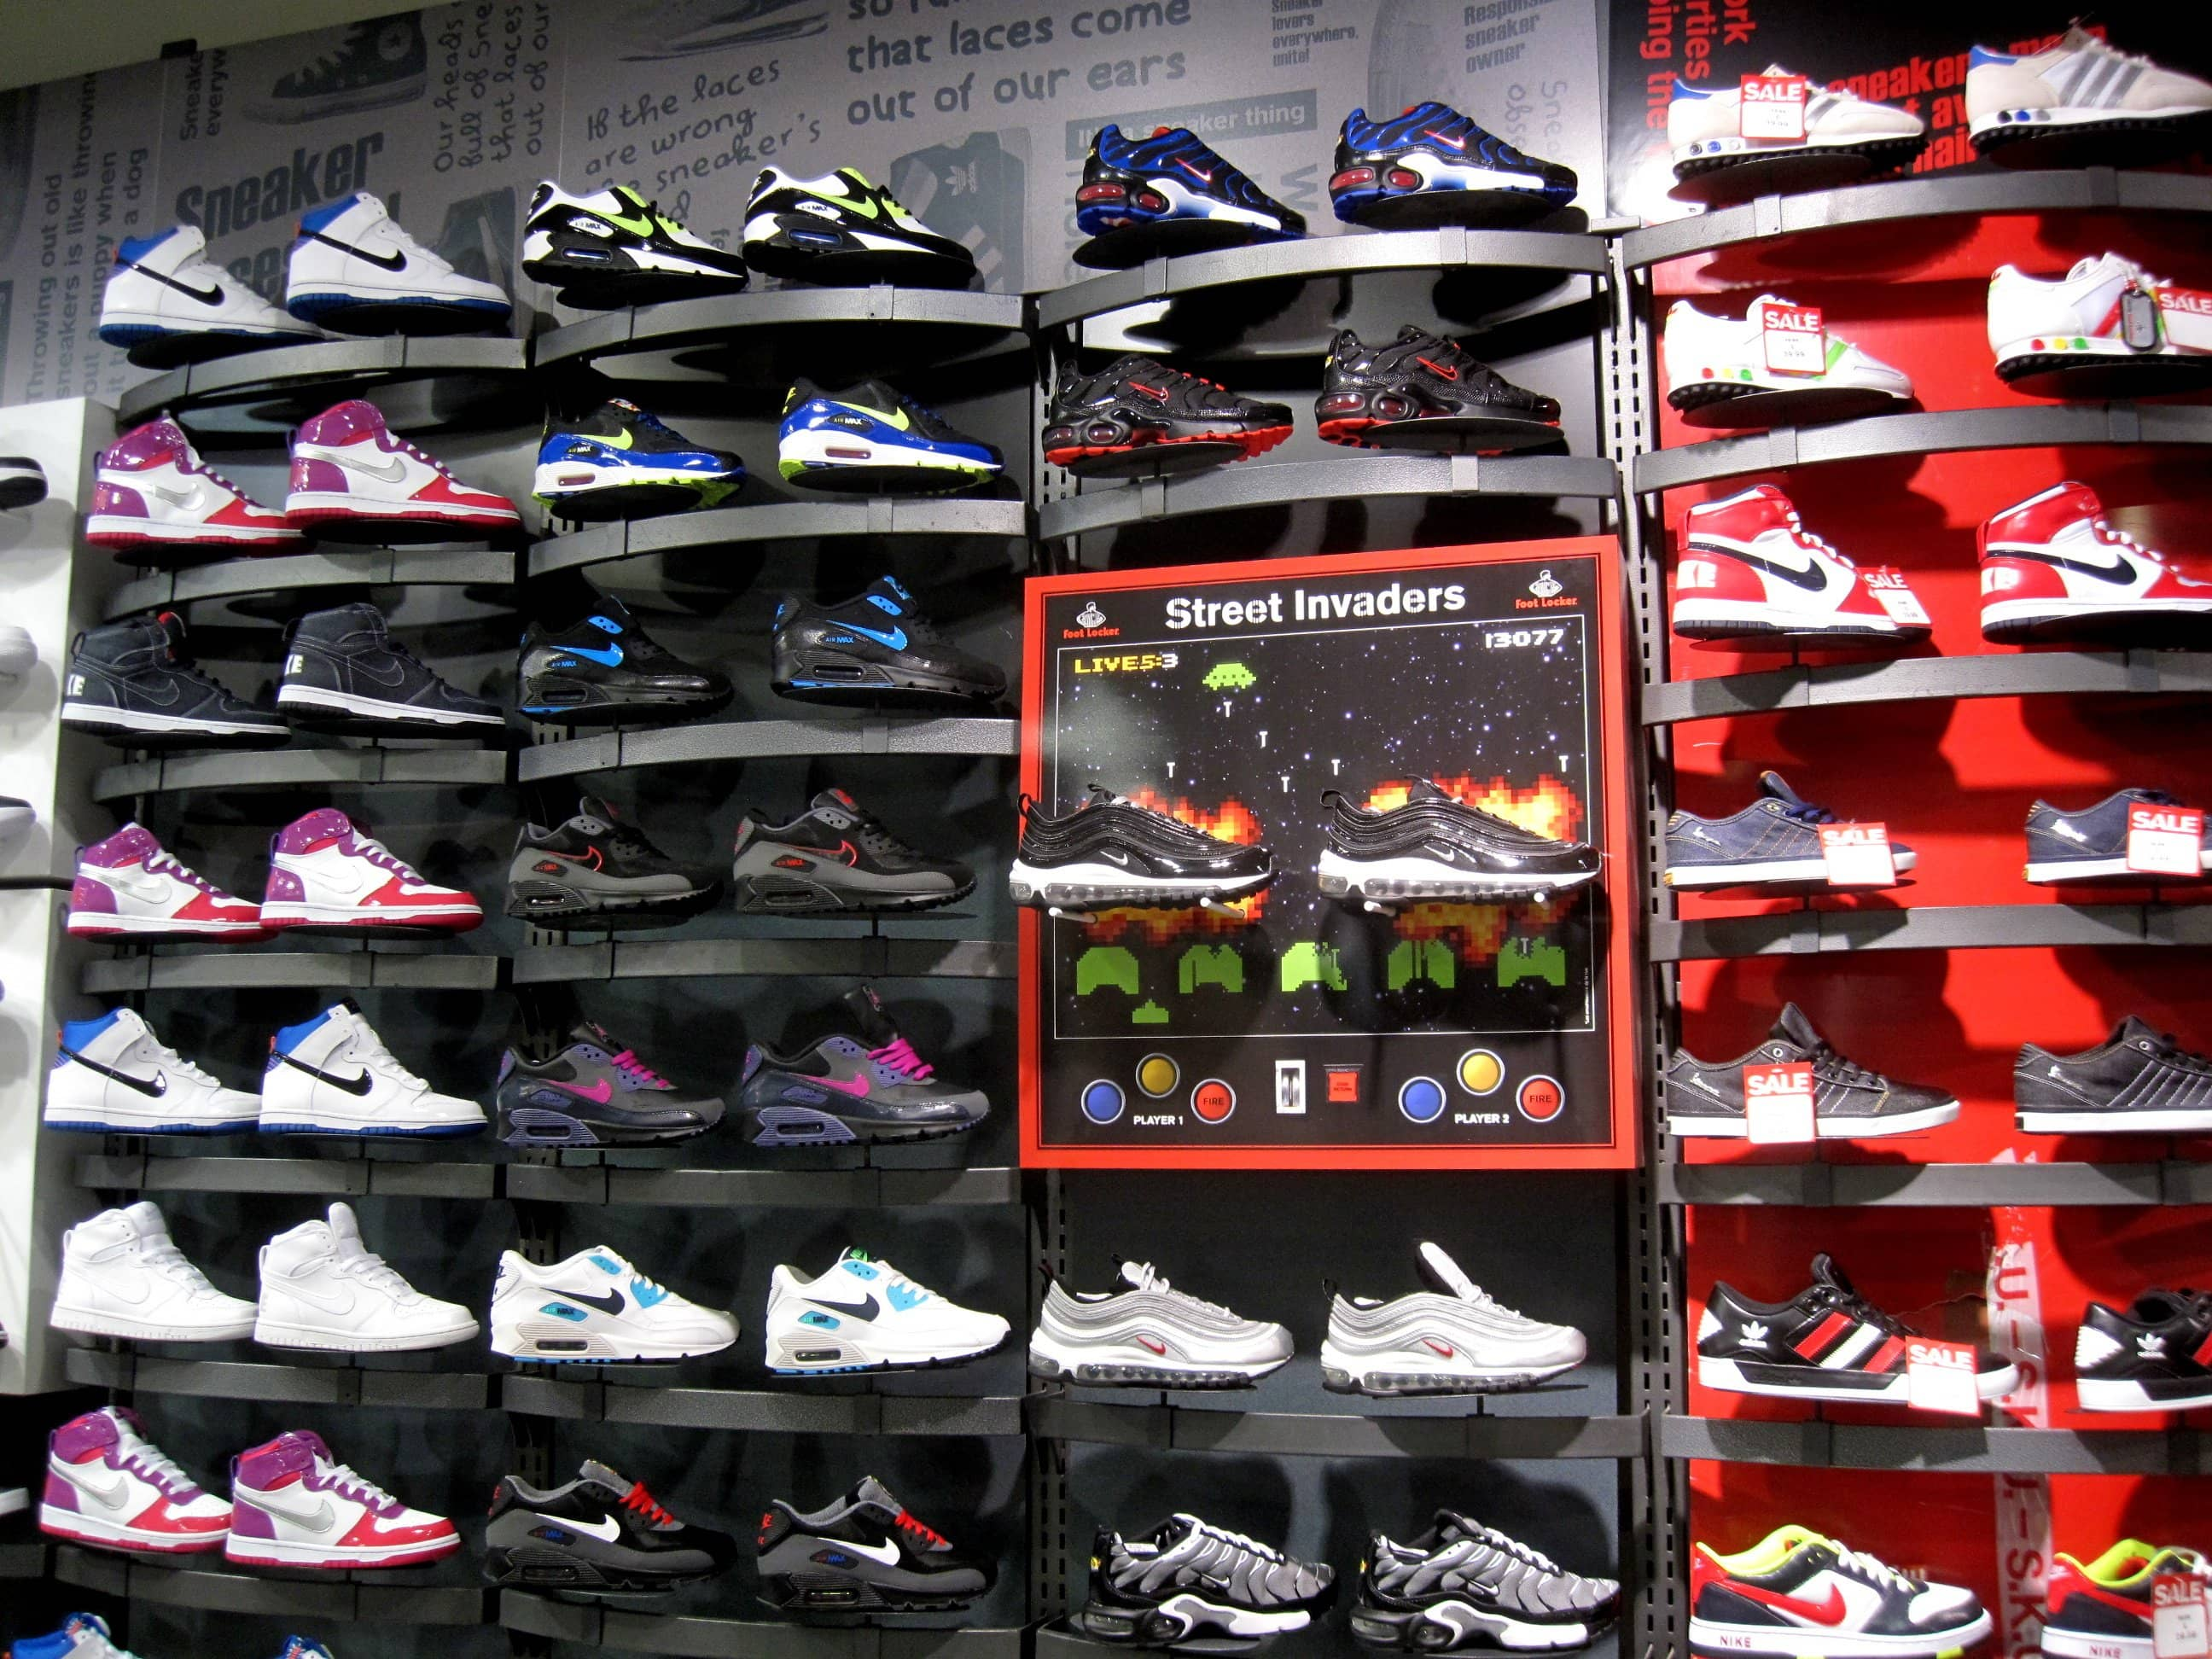 foot locker gift cards give the gift of sneakers foot locker gift cards give the gift of sneakers.